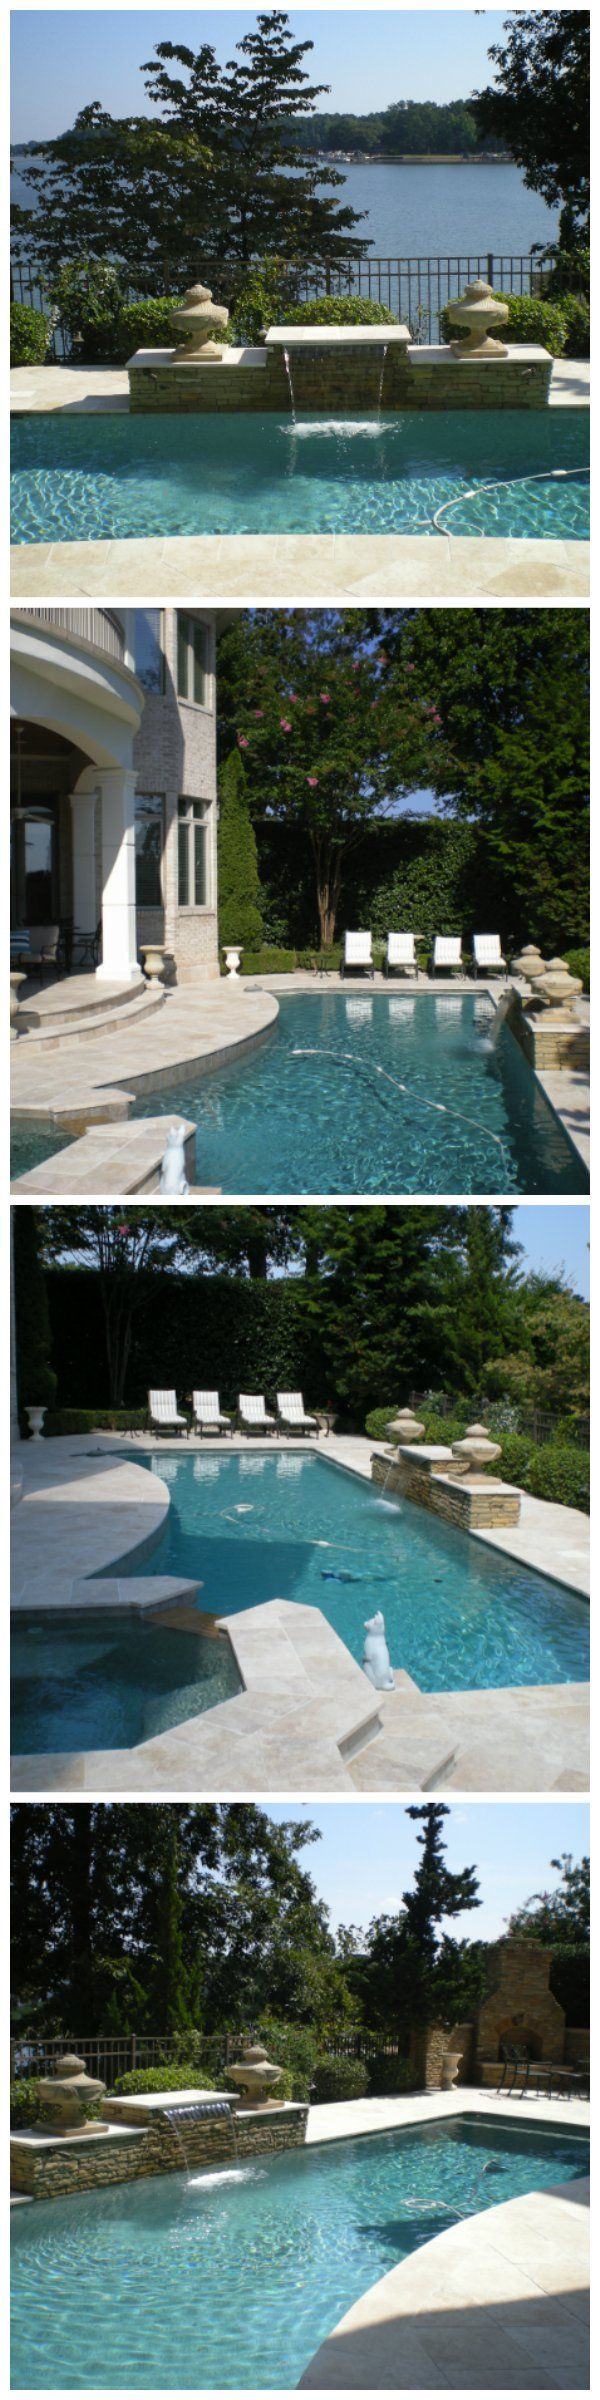 23 best Fountains & Water Features LookBook images on Pinterest ...